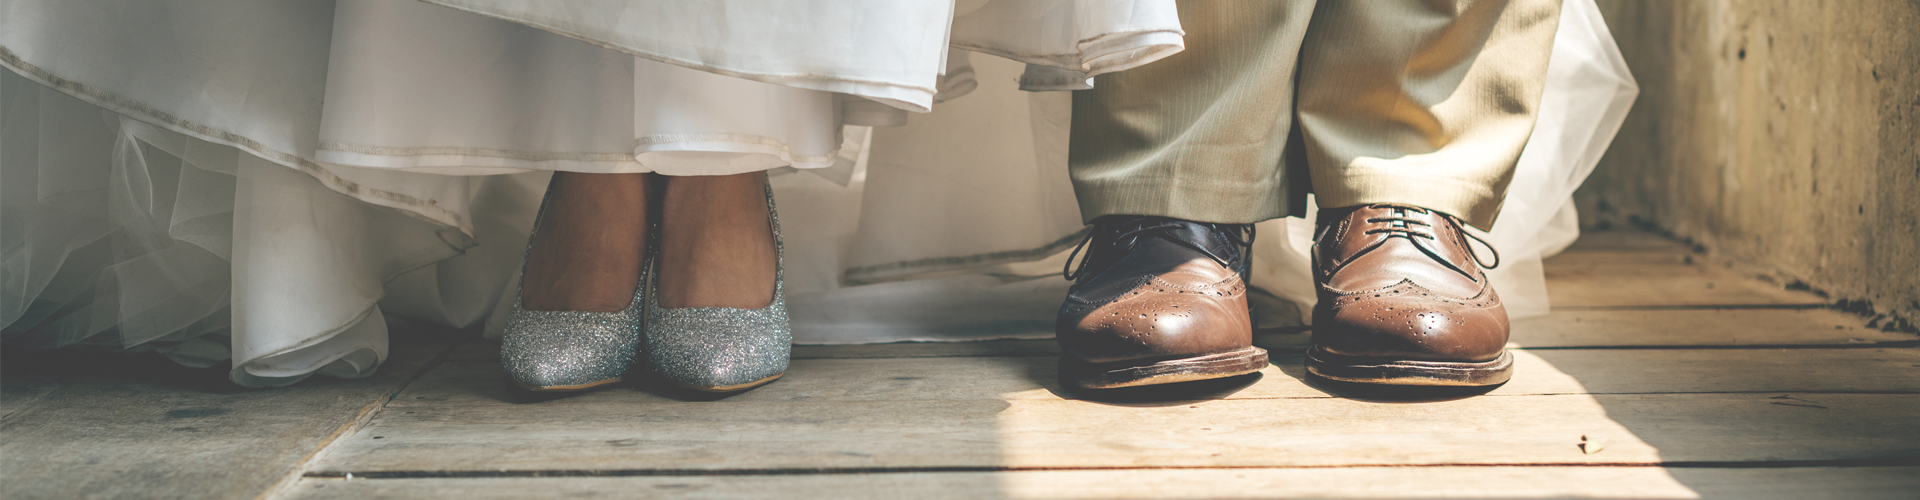 bride's and groom's shoes - tips for choosing your wedding shoes